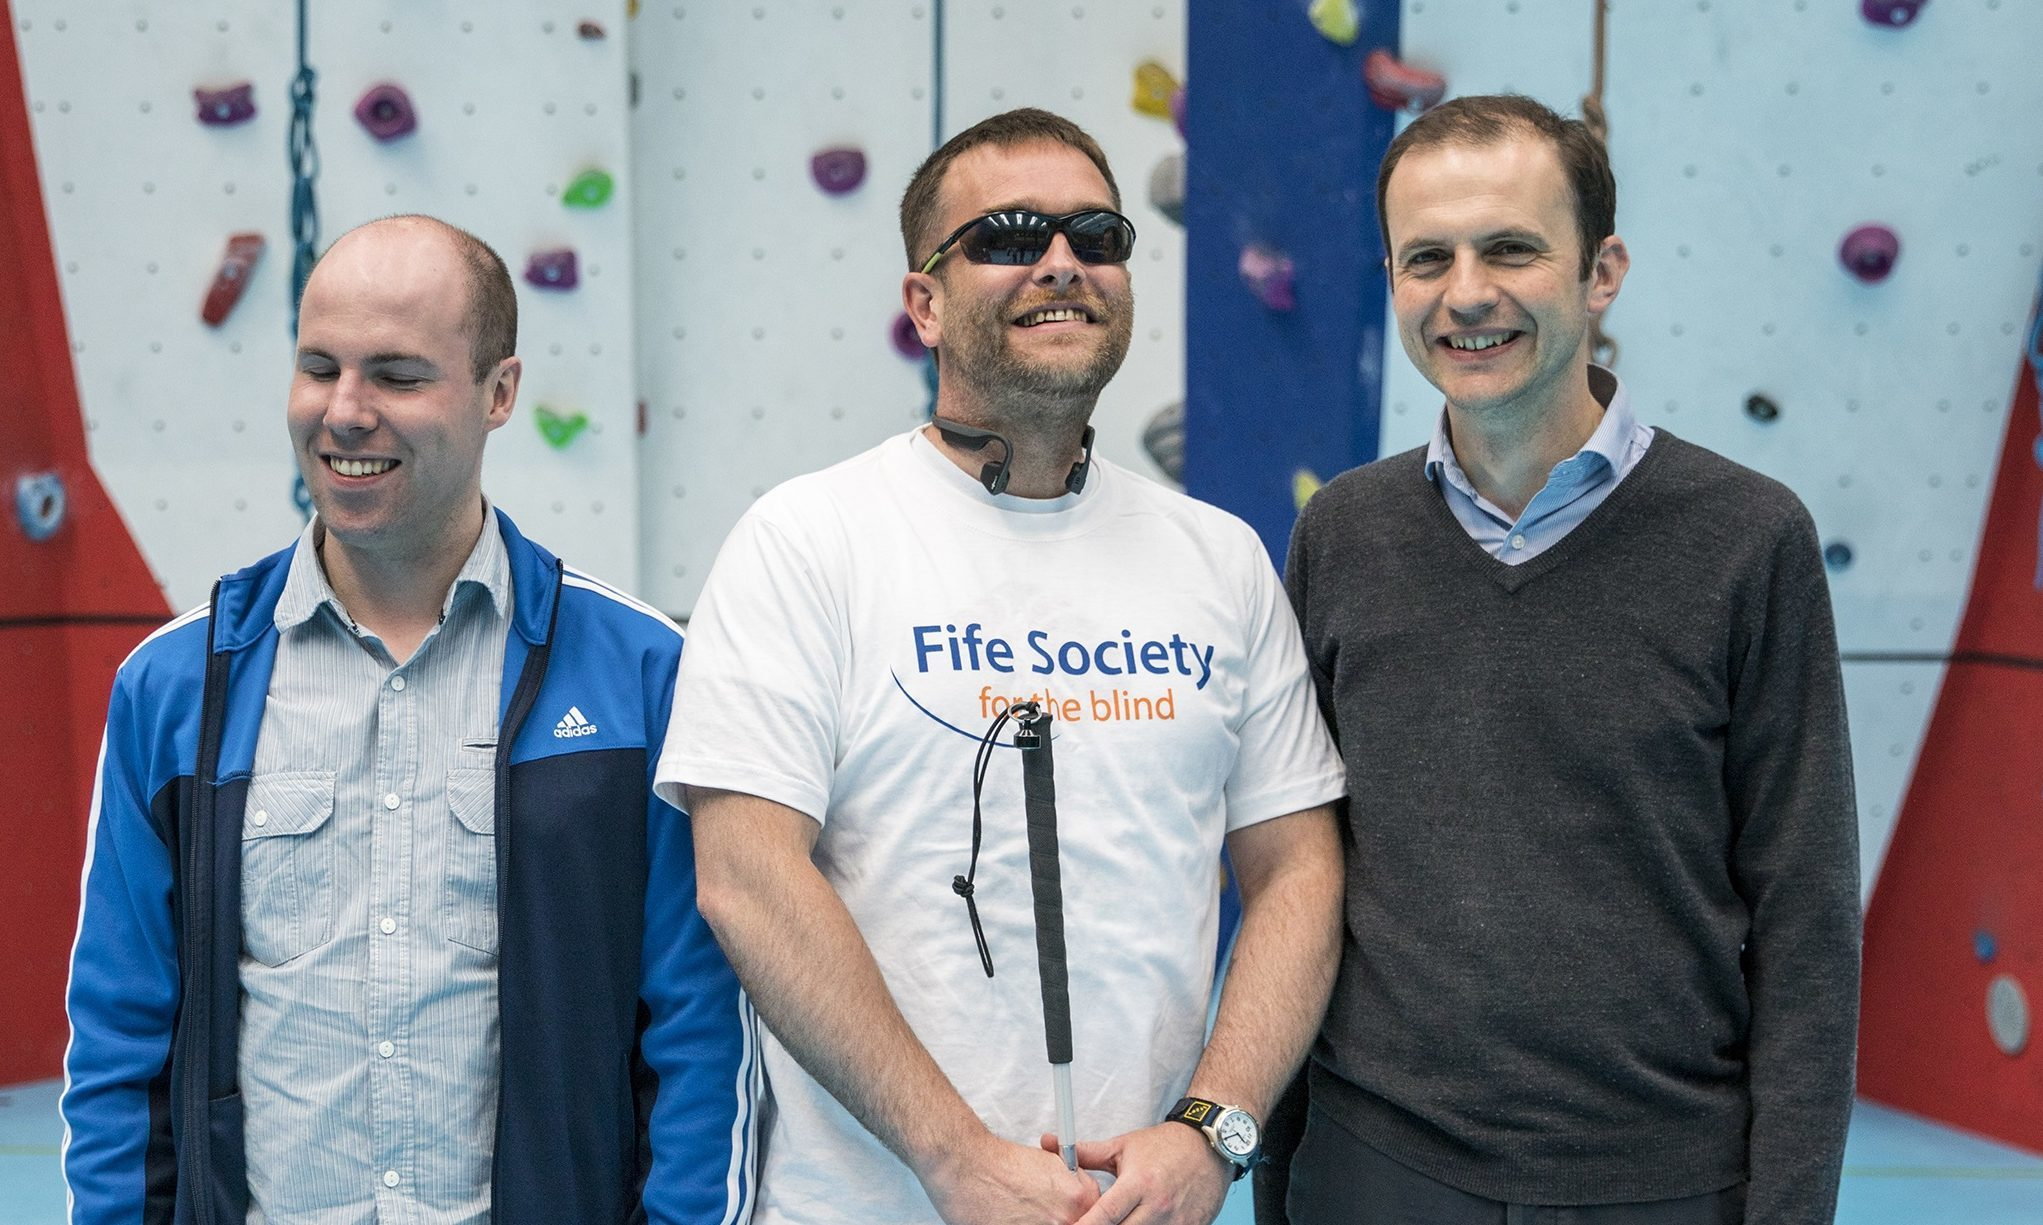 Garry Cowan (centre) with MP Stephen Gethins (right) and Stuart Beveridge, of Fife Society for the Blind